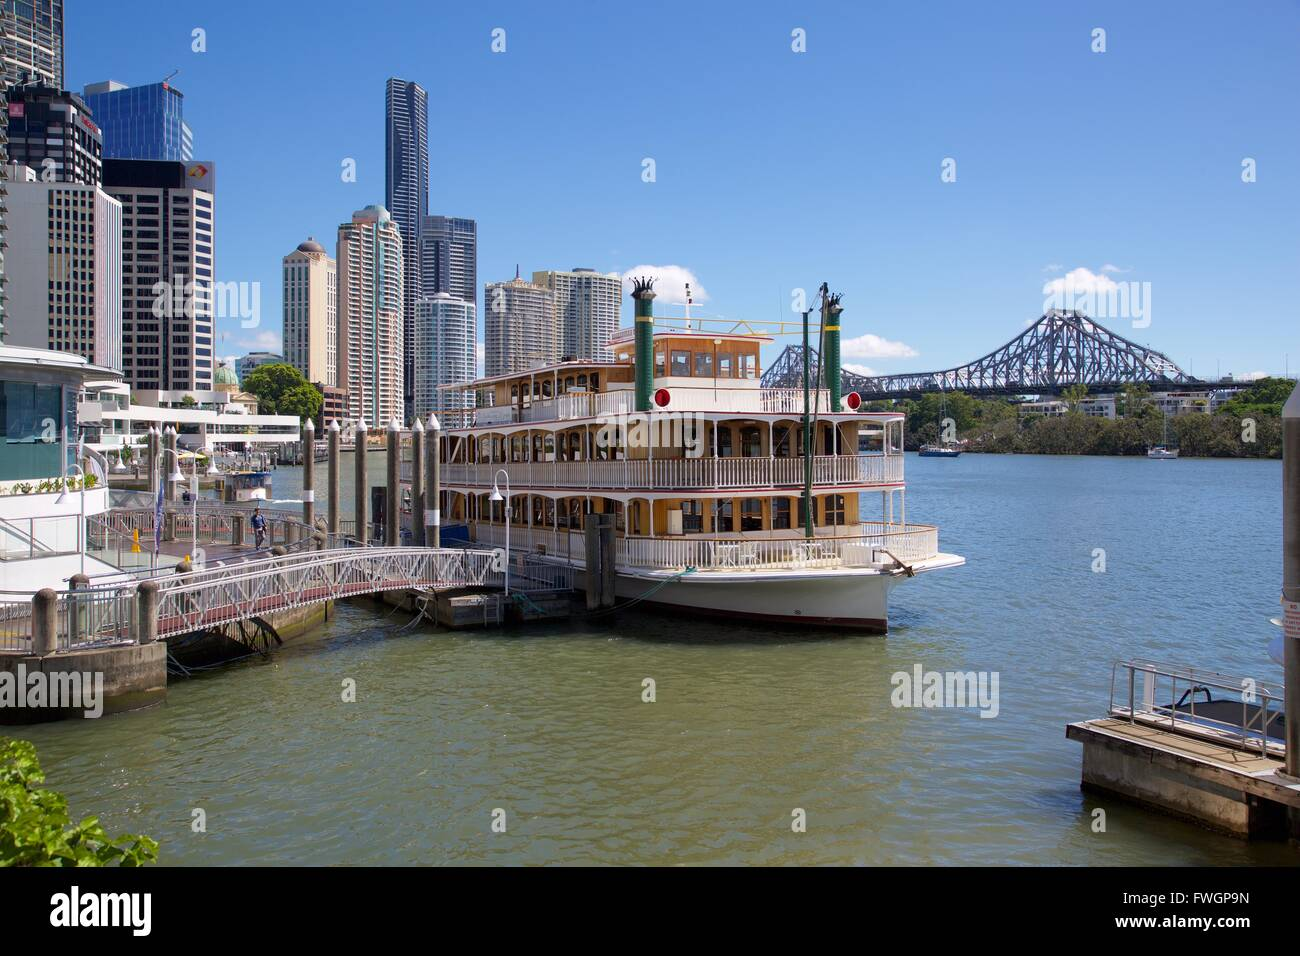 Brisbane River, Story Bridge and City Reach Boardwalk, Brisbane, Queensland, Australia, Oceania - Stock Image